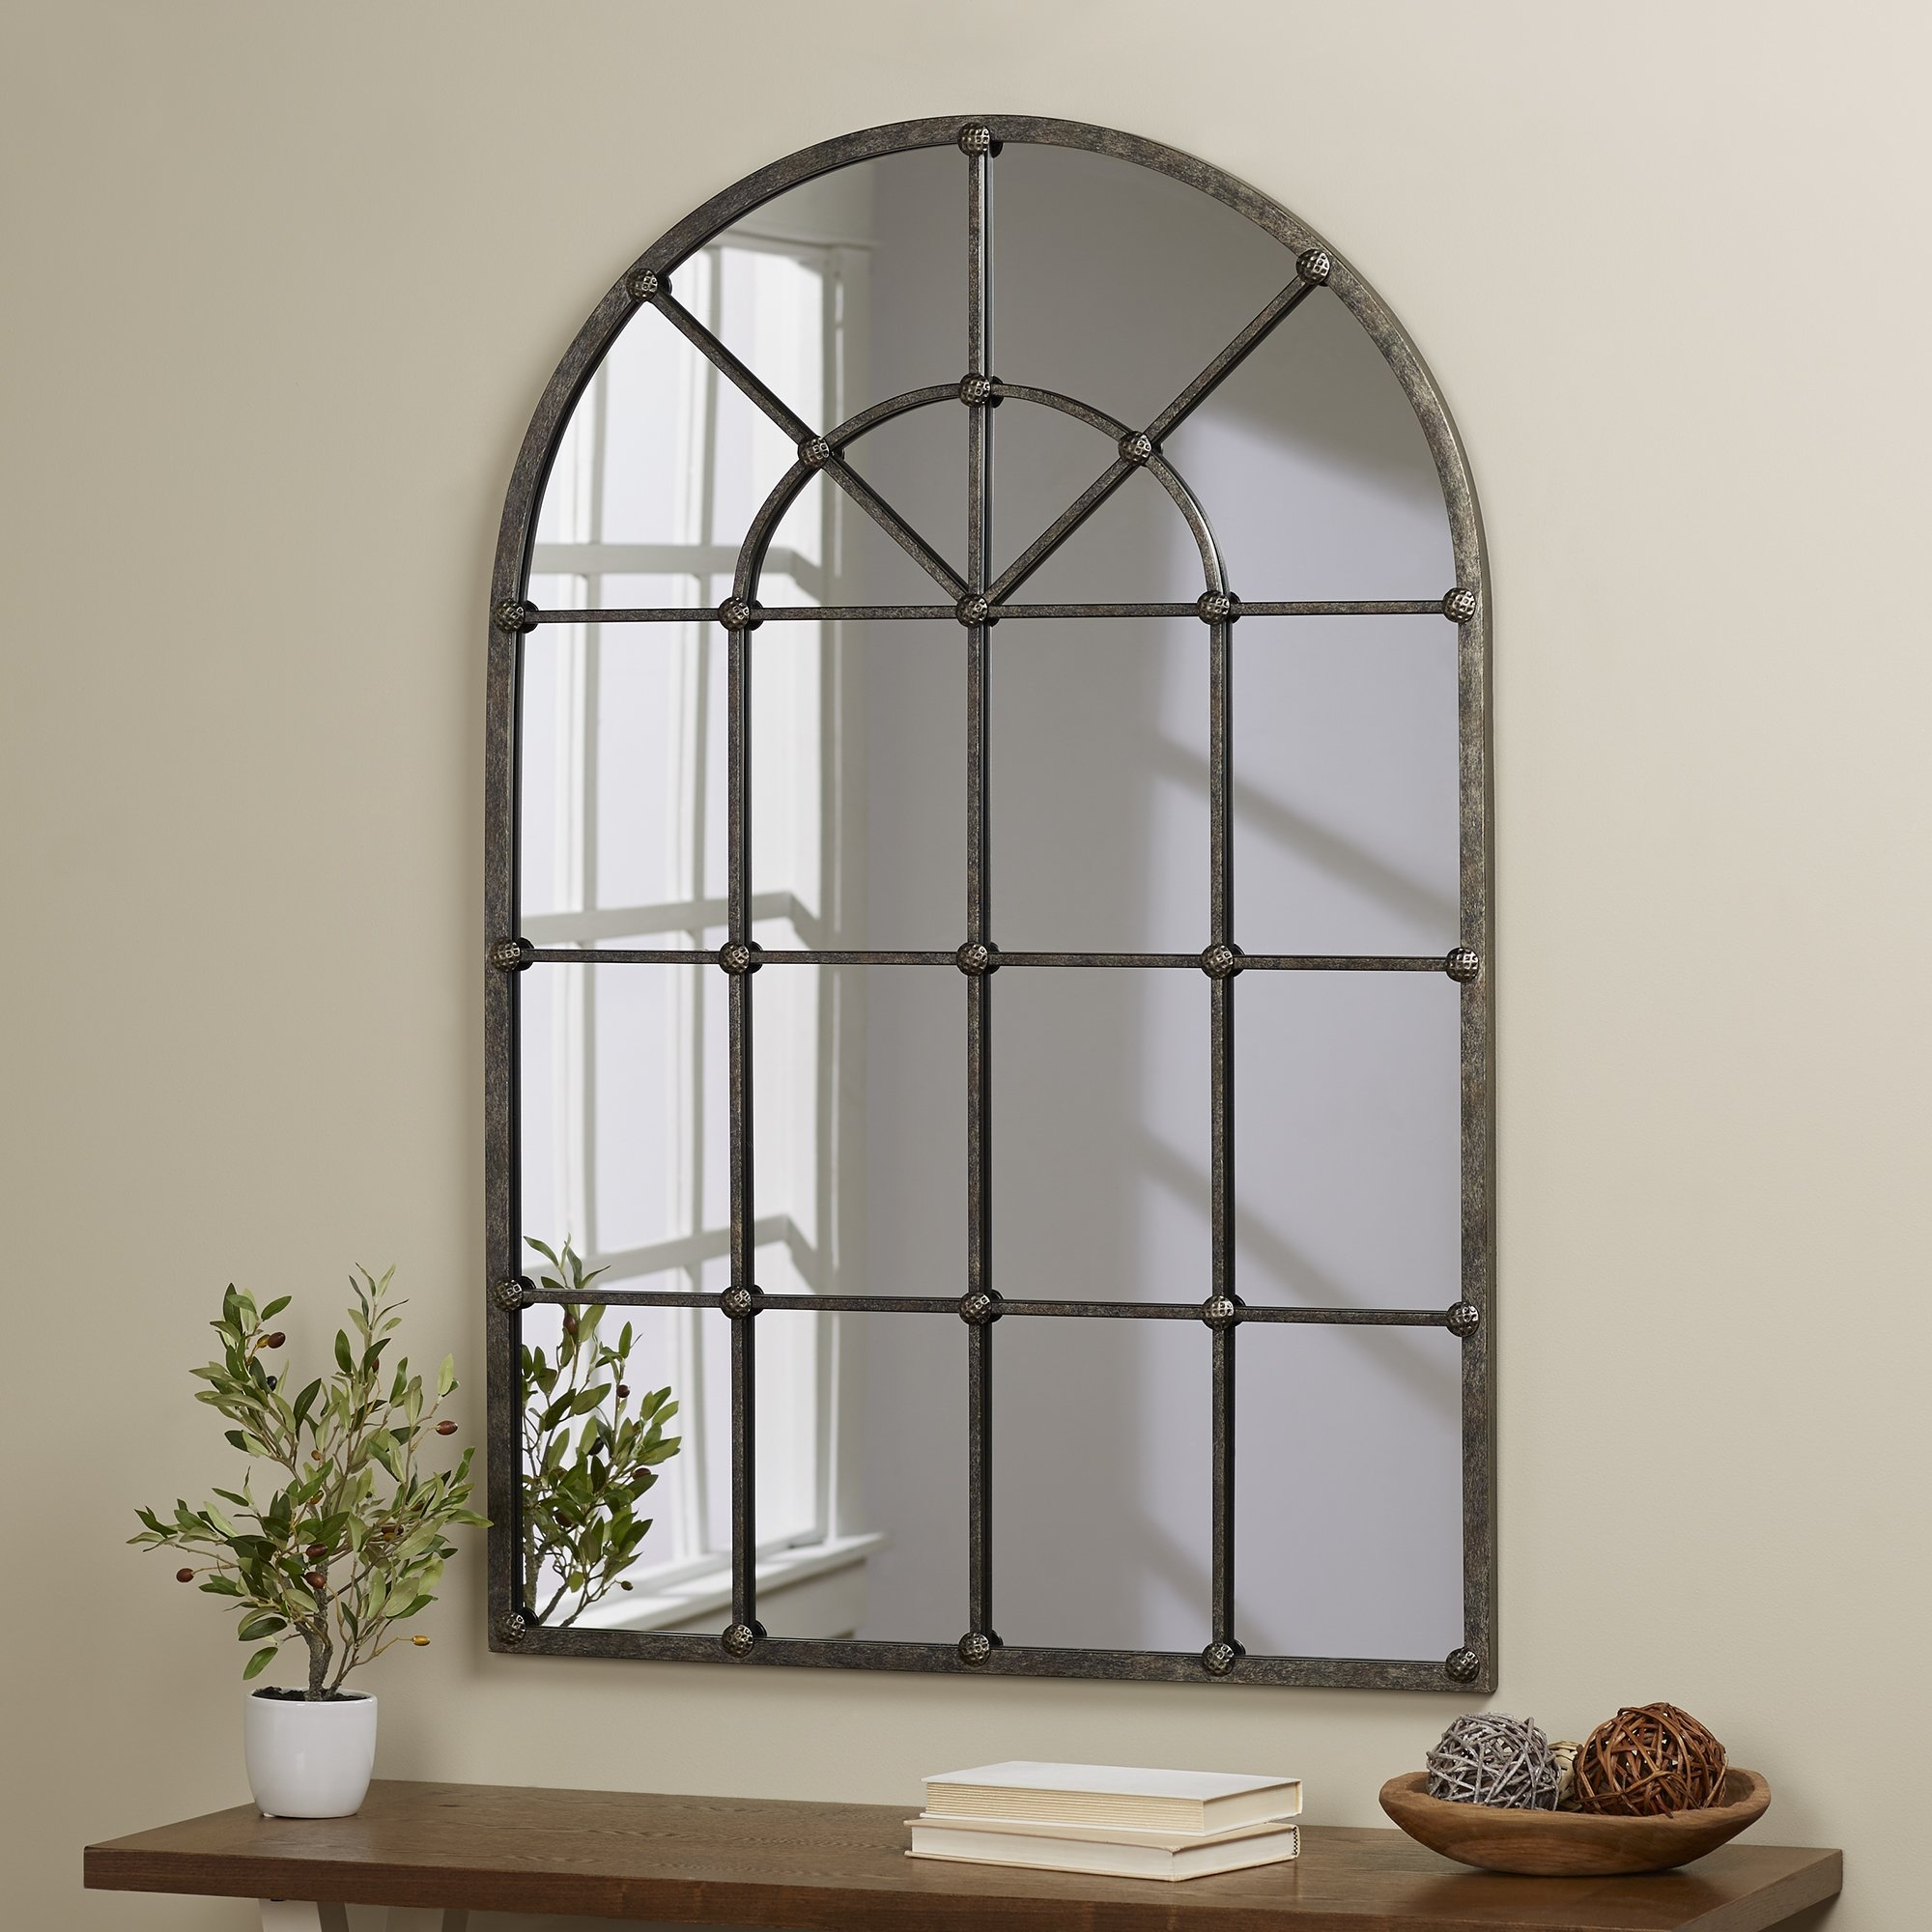 15 Collection Of Arched Wall Mirrors